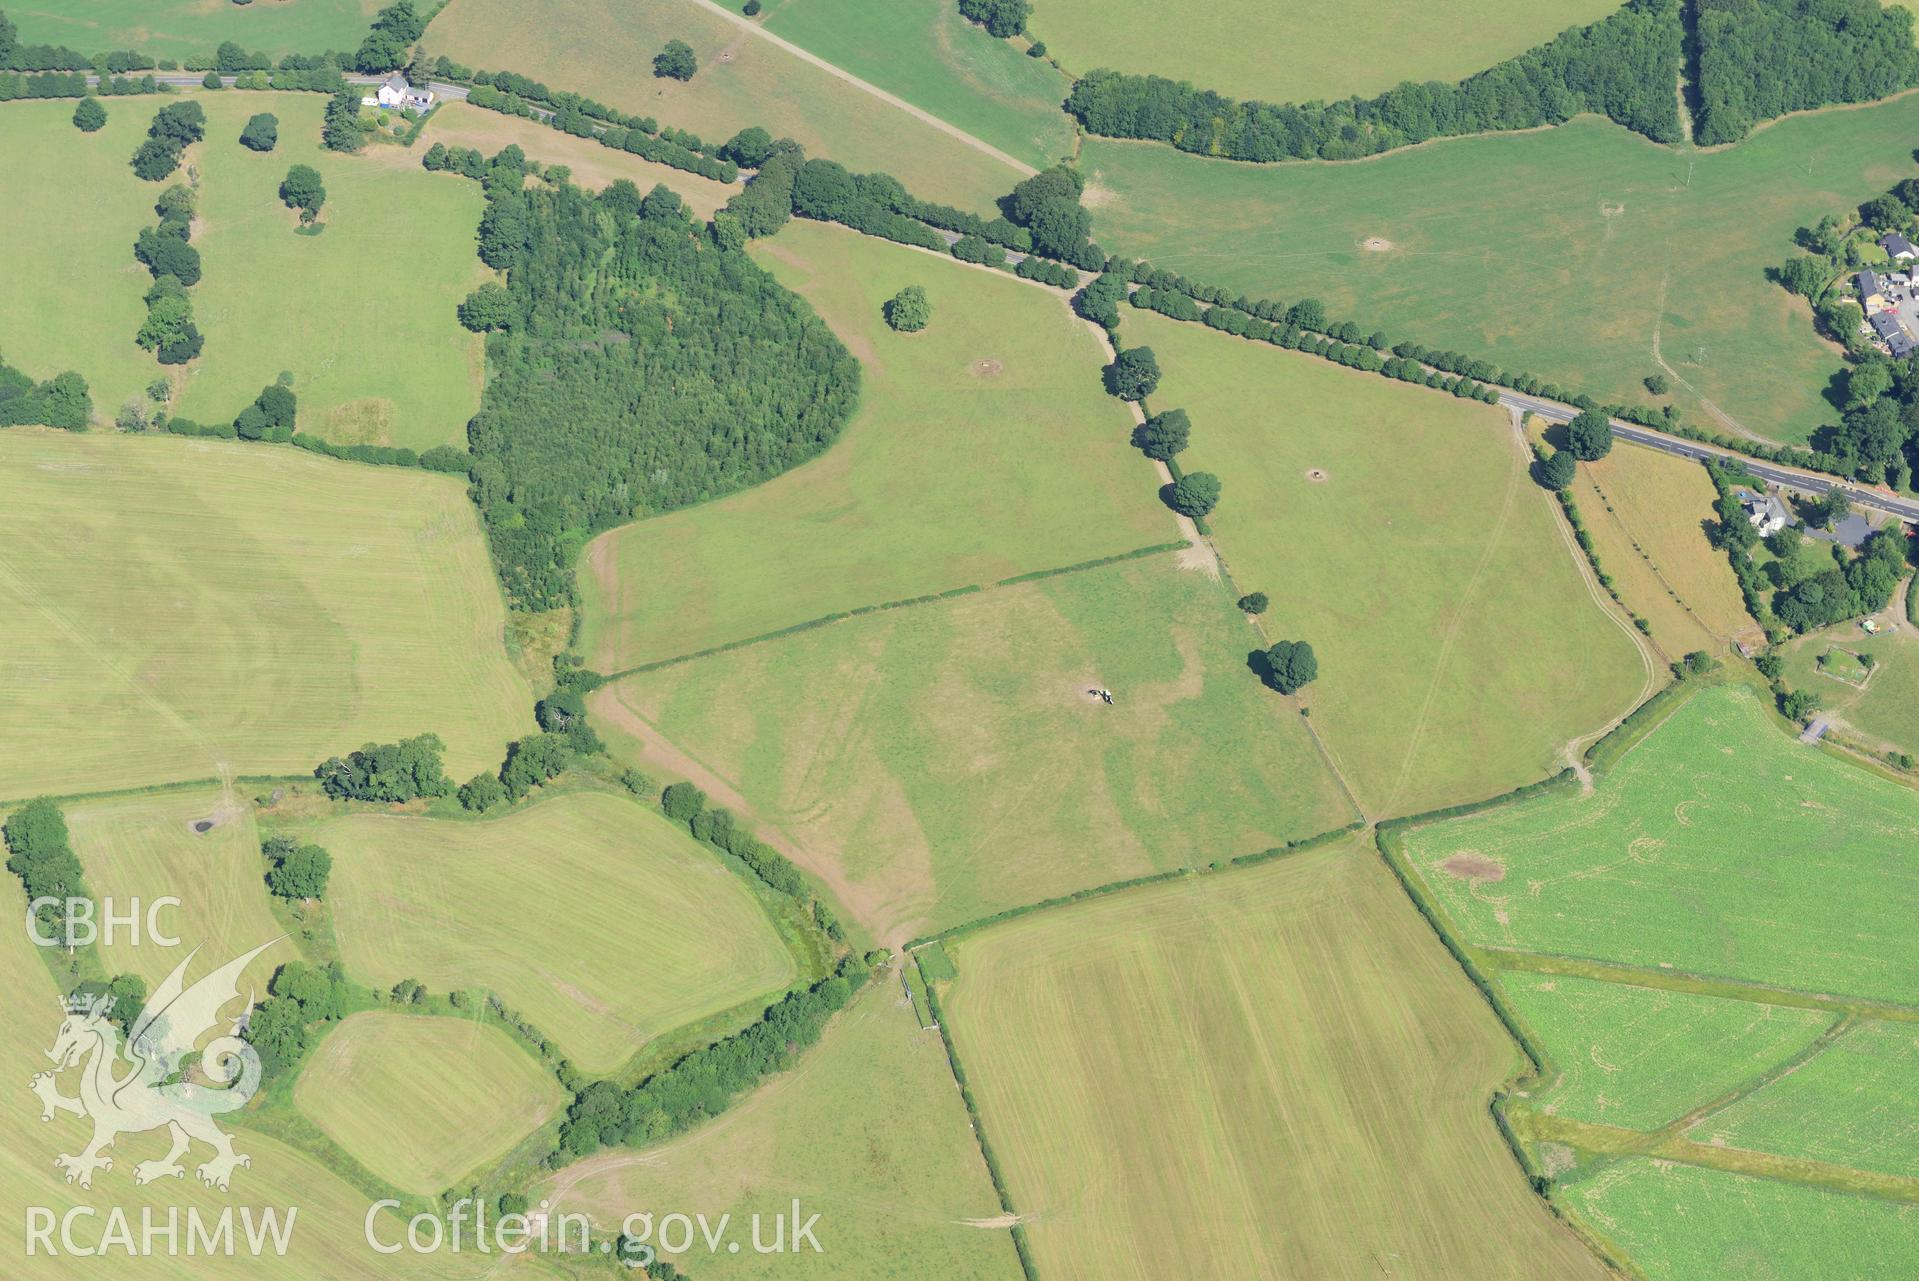 Royal Commission aerial photography of cropmarks of Llanfor Roman fort taken on 19th July 2018 during the 2018 drought.